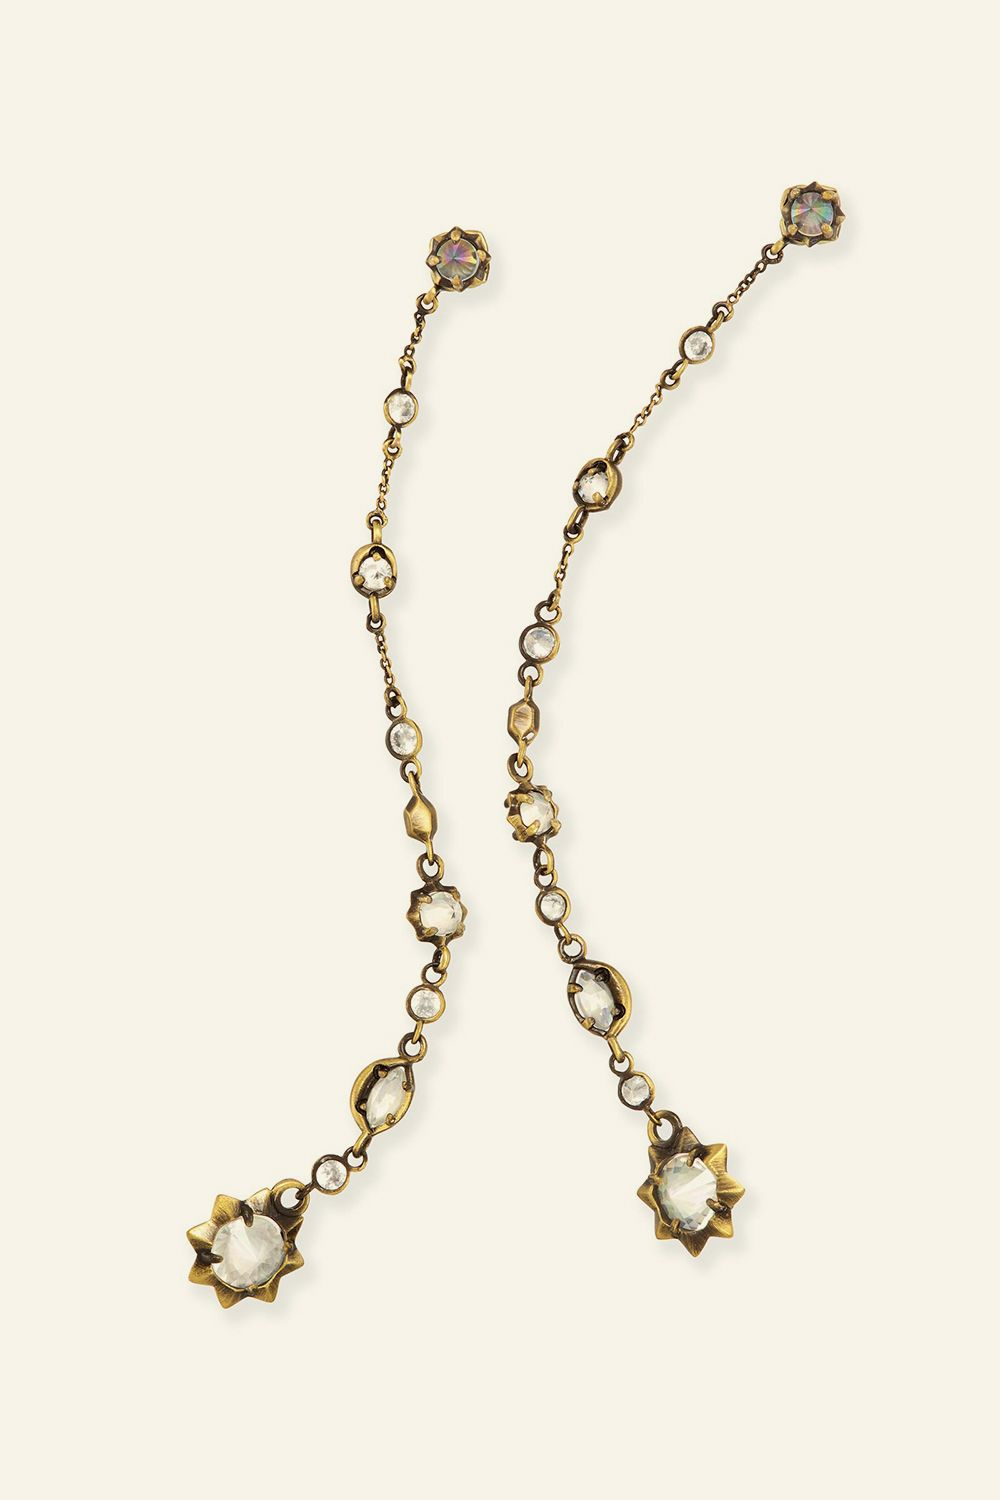 """<p>These long,&nbsp&#x3B;delicate earrings feature brass charms and iridescent stones to catch the light. </p><p>Kendra Scott Lydia Shoulder Duster Ear Jackets, $75&#x3B; <a href=""""http://www.kendrascott.com/jewelry/categories/earrings/842177143148.html"""" target=""""_blank"""" data-tracking-id=""""recirc-text-link"""">kendrascott.com</a><a href=""""http://www.kendrascott.com/jewelry/categories/earrings/842177143148.html""""></a></p>"""